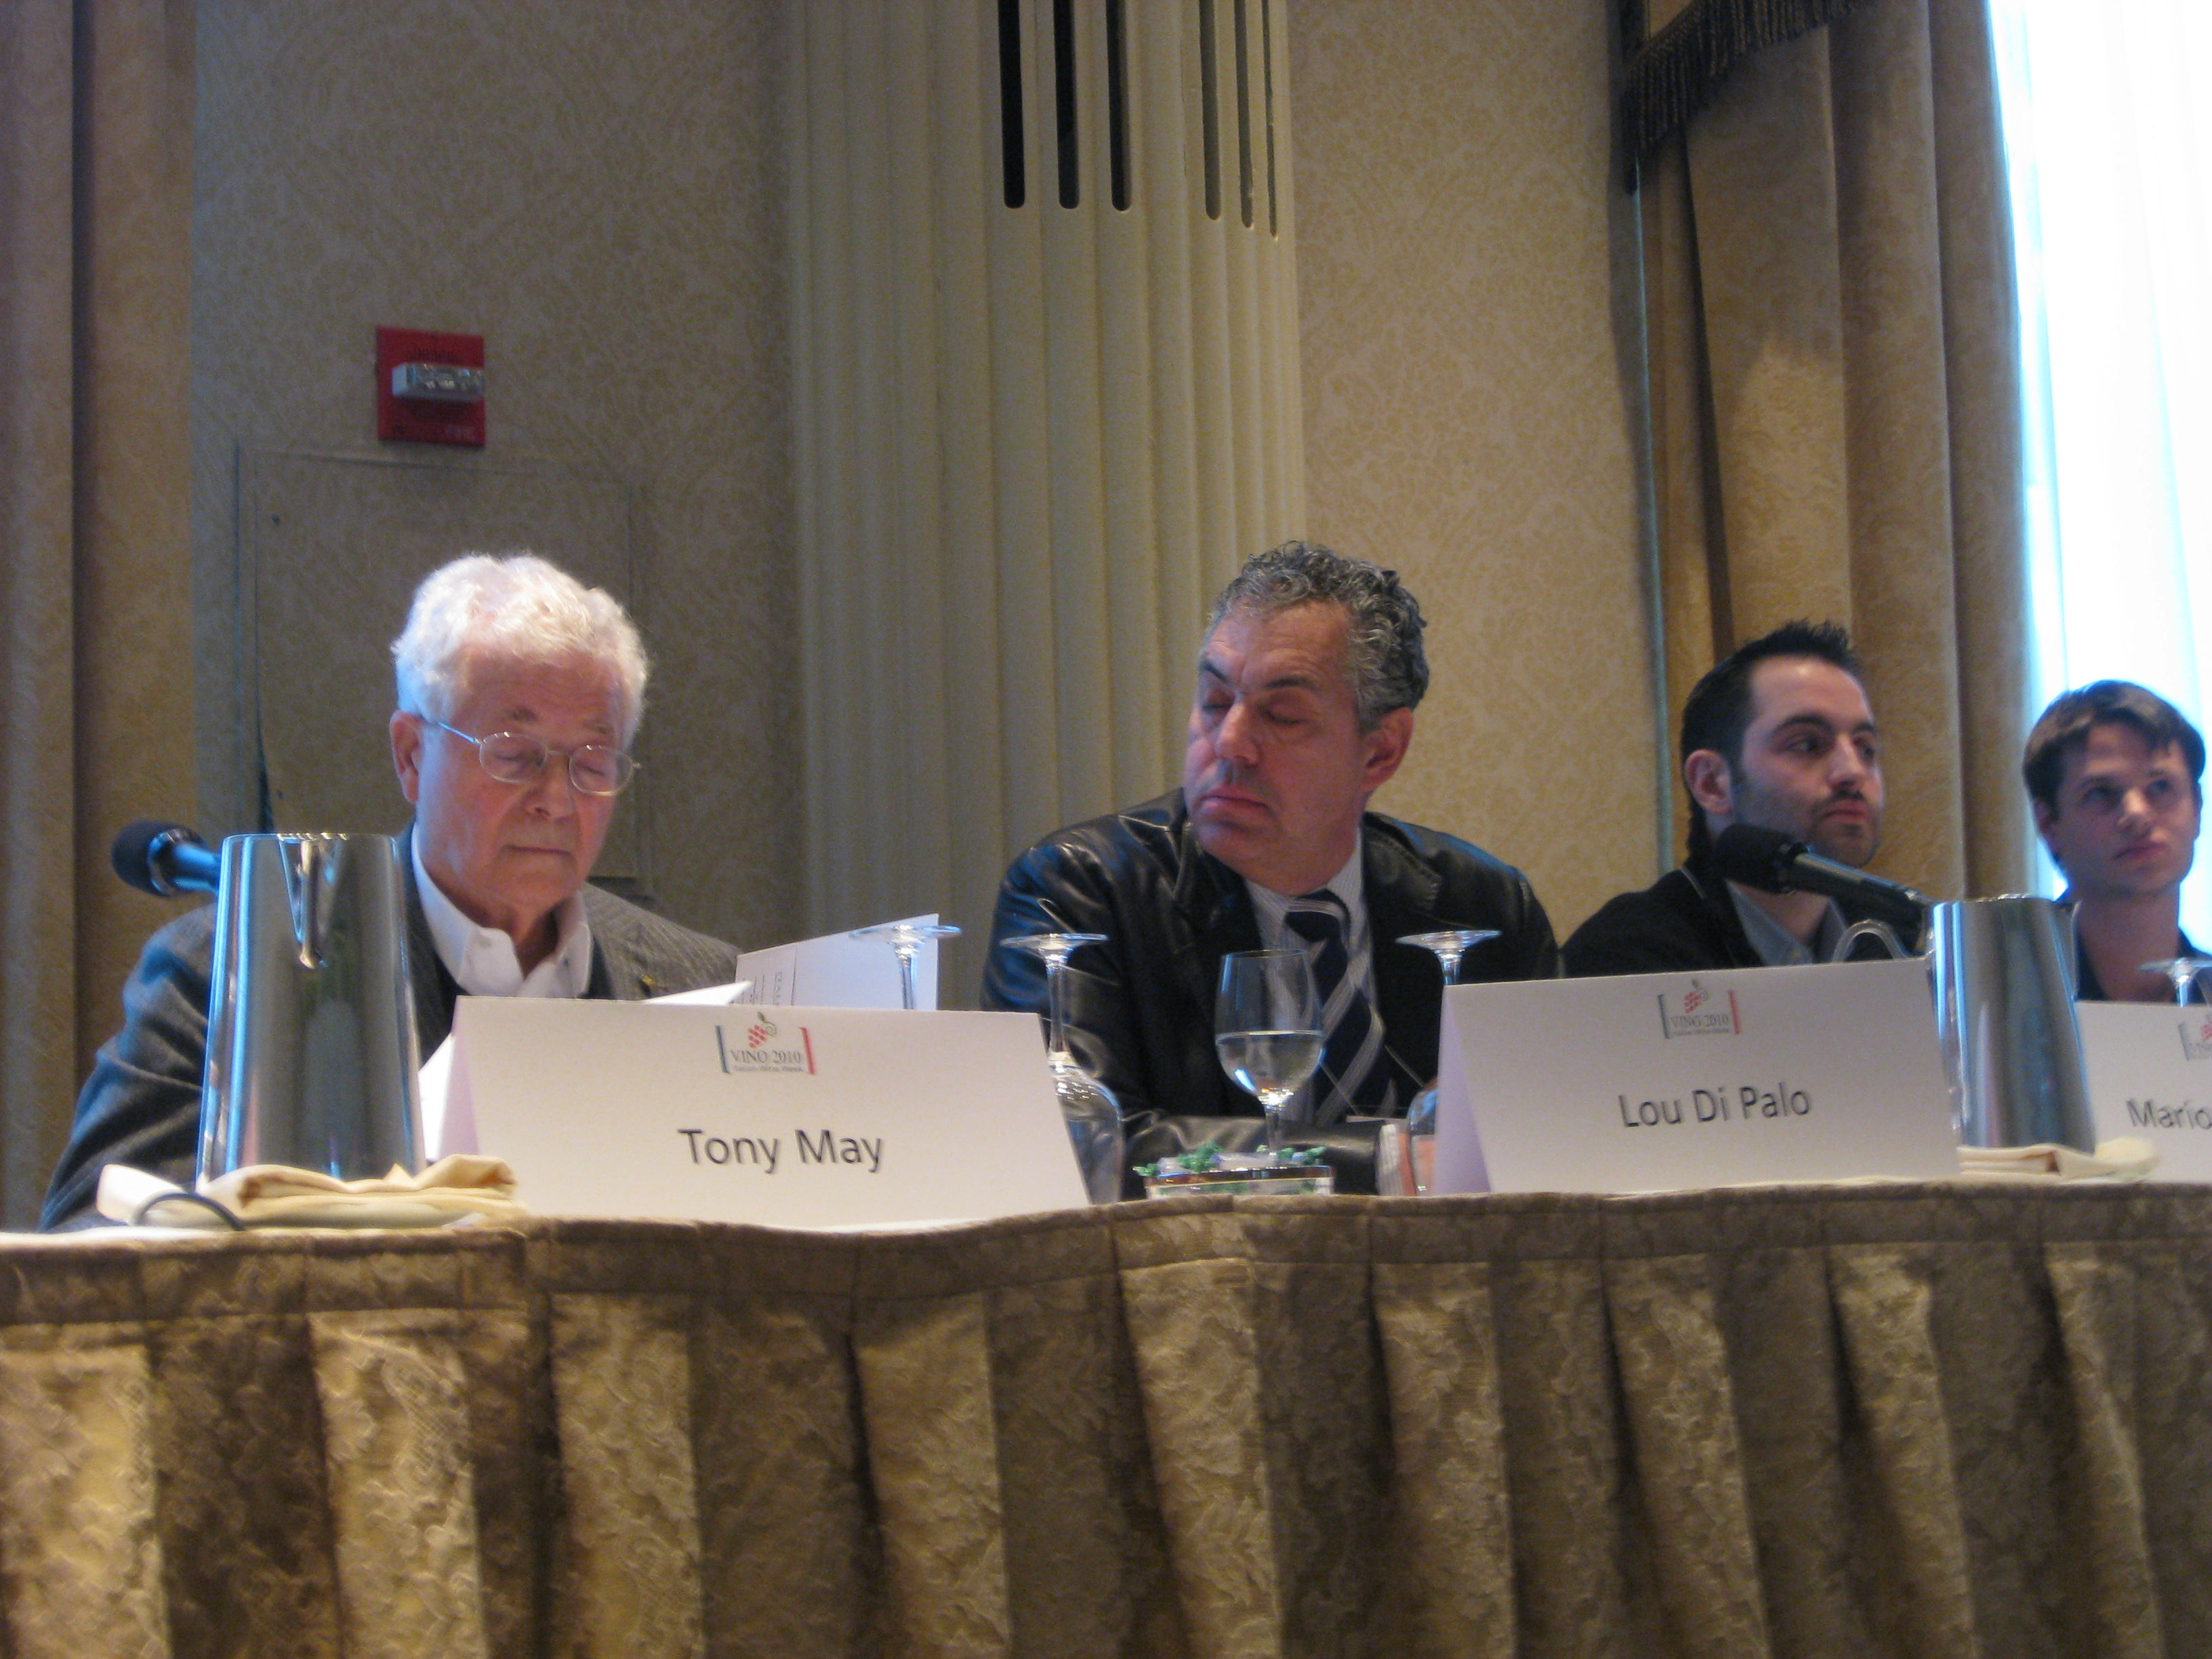 Panelists Tony May, Lou Di Palo, Mario Carbone, Rich Torrisi